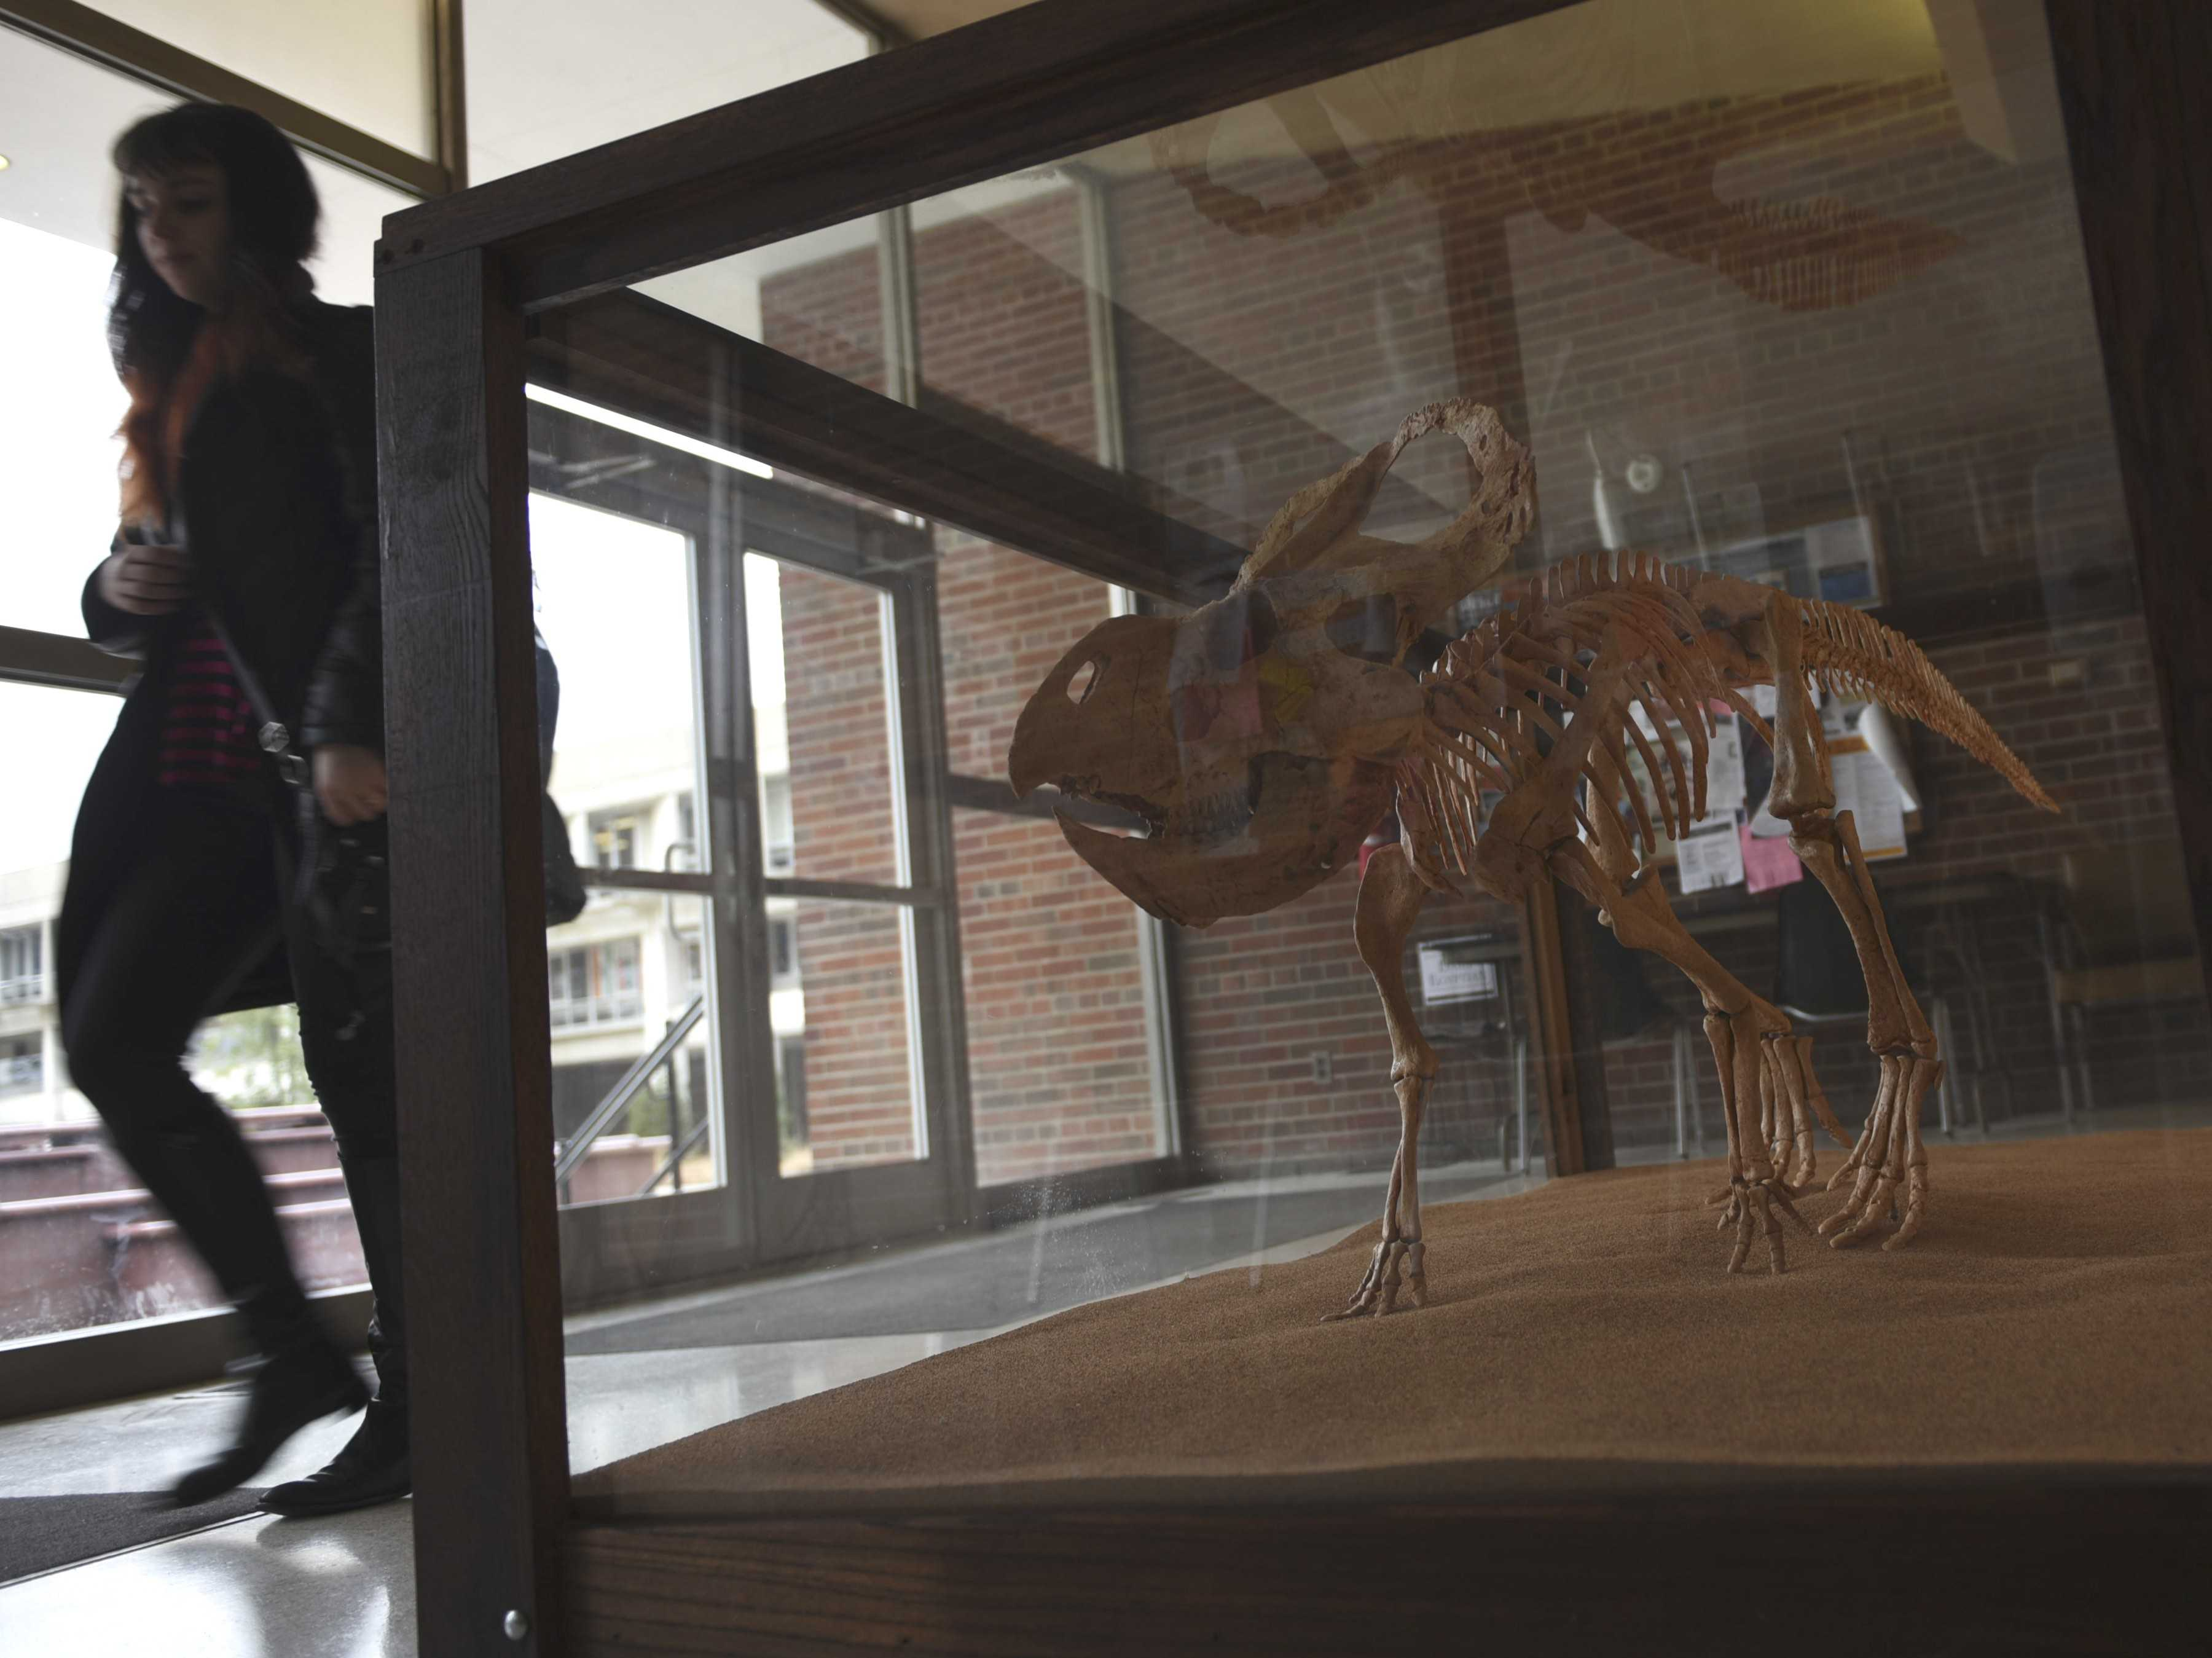 A dinosaur cast resembling 70-million-year-old fossils sits on display Friday, Jan. 20, 2017, in the main lobby of Browne Auditorium near the south entrance. (Bill Lukitsch | @lukitsbill)